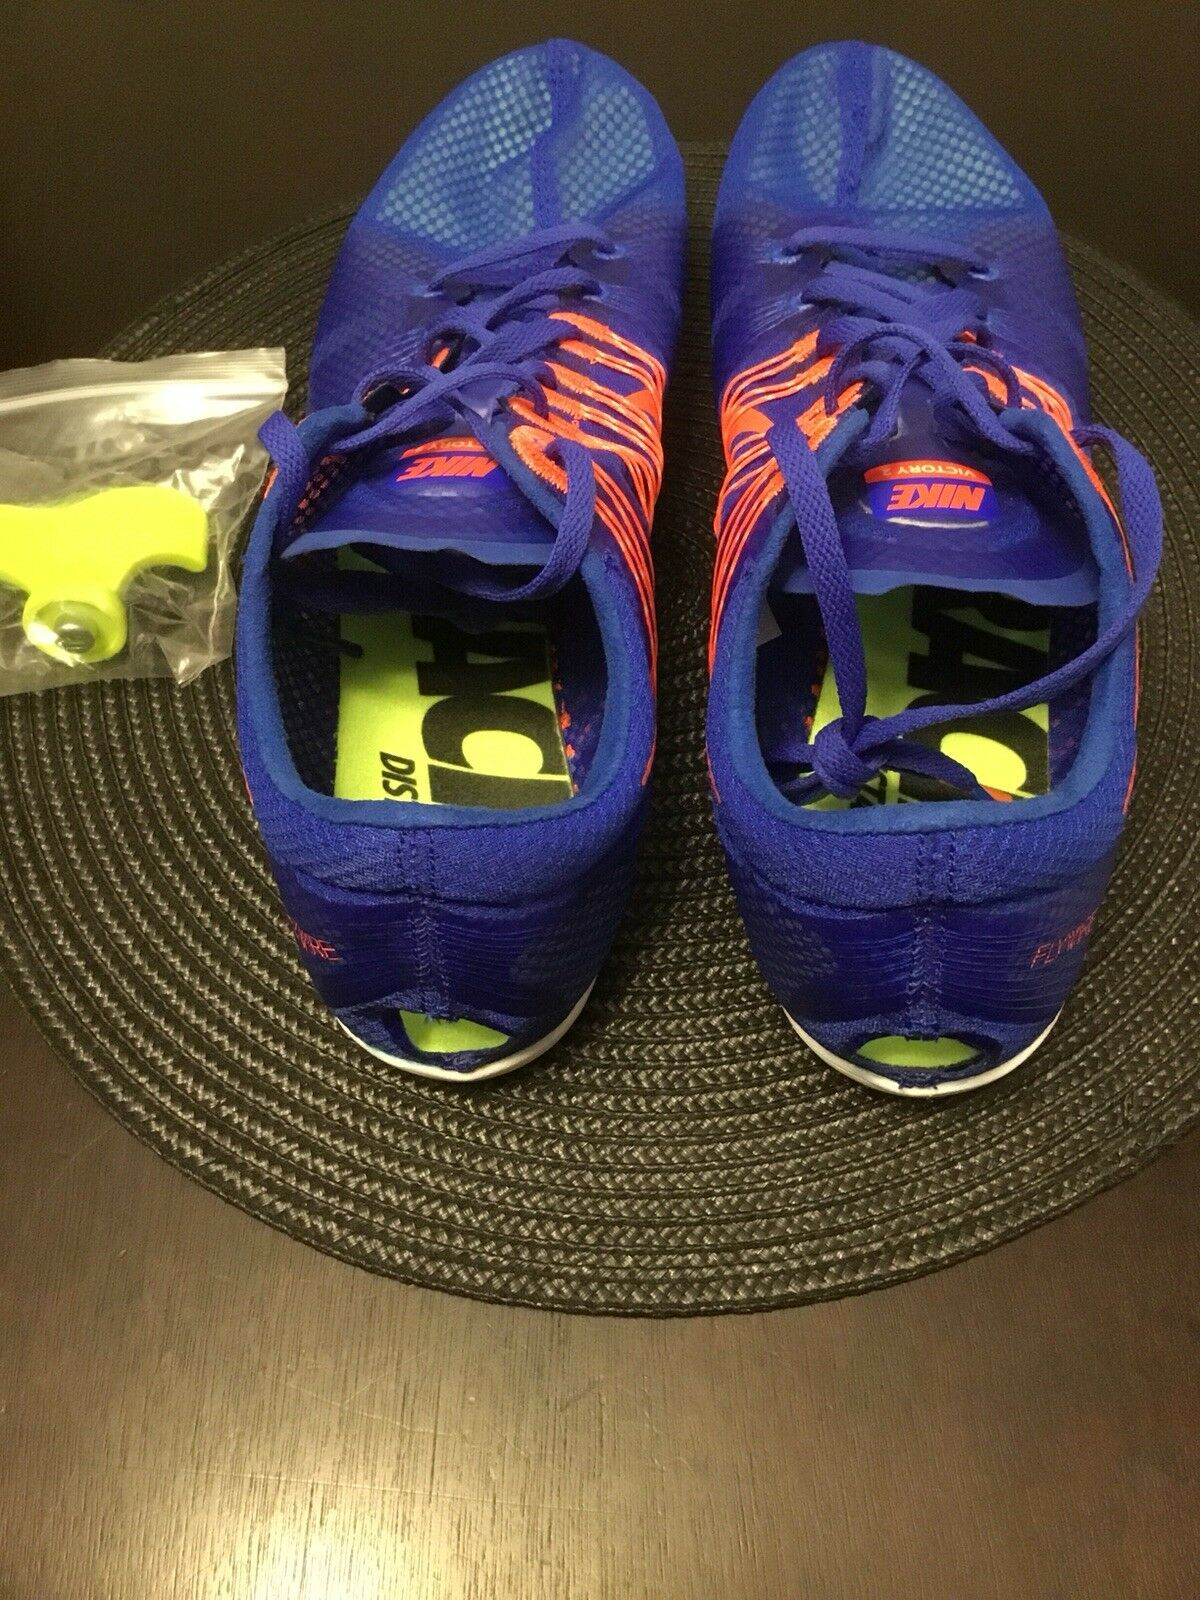 0c2a0b21946ac ... Nike Mens Mens Mens Zoom Victory 2 Flywire Spikes Track Shoes 555365  487 US 13 New